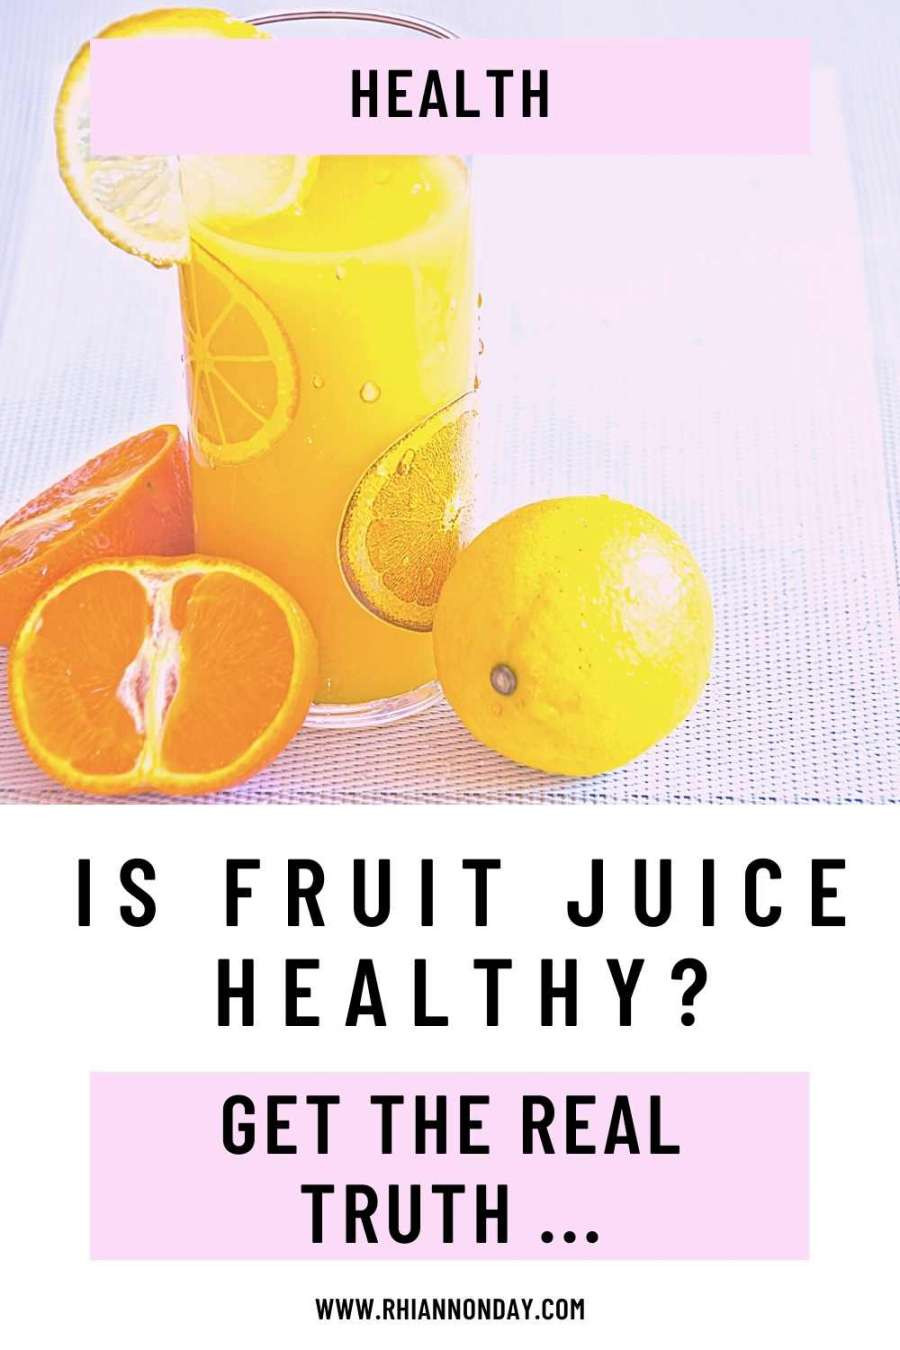 Should you drink juice if you want to lose weight?  Is fruit juice healthy, or is it as bad as soft drink?  If you want to make a healthy choice, you need to read this. #healthfood #fruitjuice #juicemyths #nutrition #healthychoice #fitnessgoals